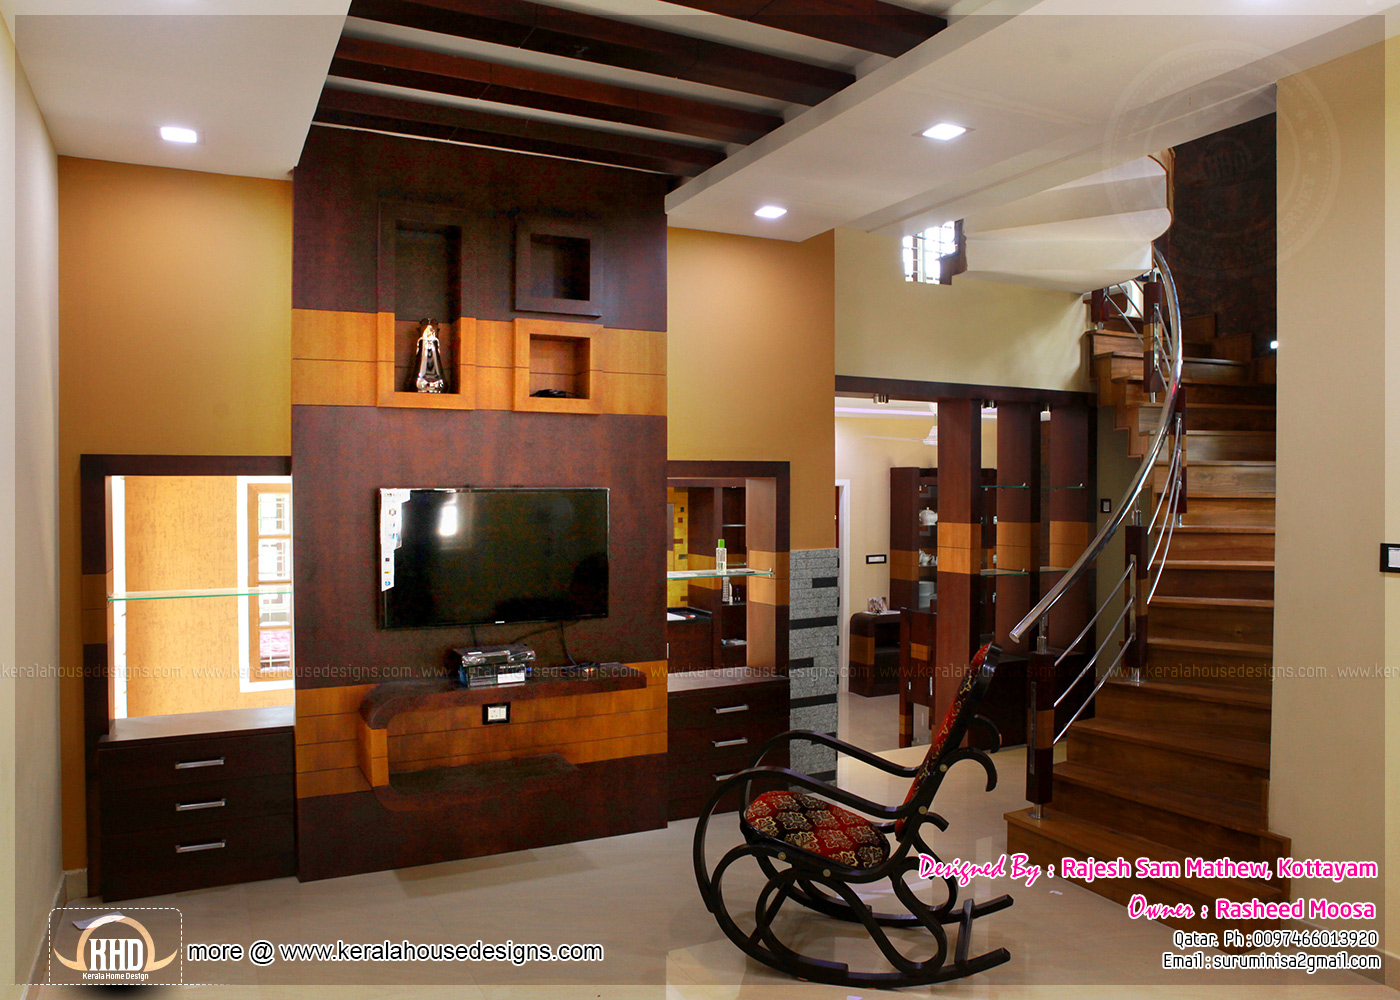 Living Room Designs Kerala Homes kerala interior design with photos - kerala home design and floor